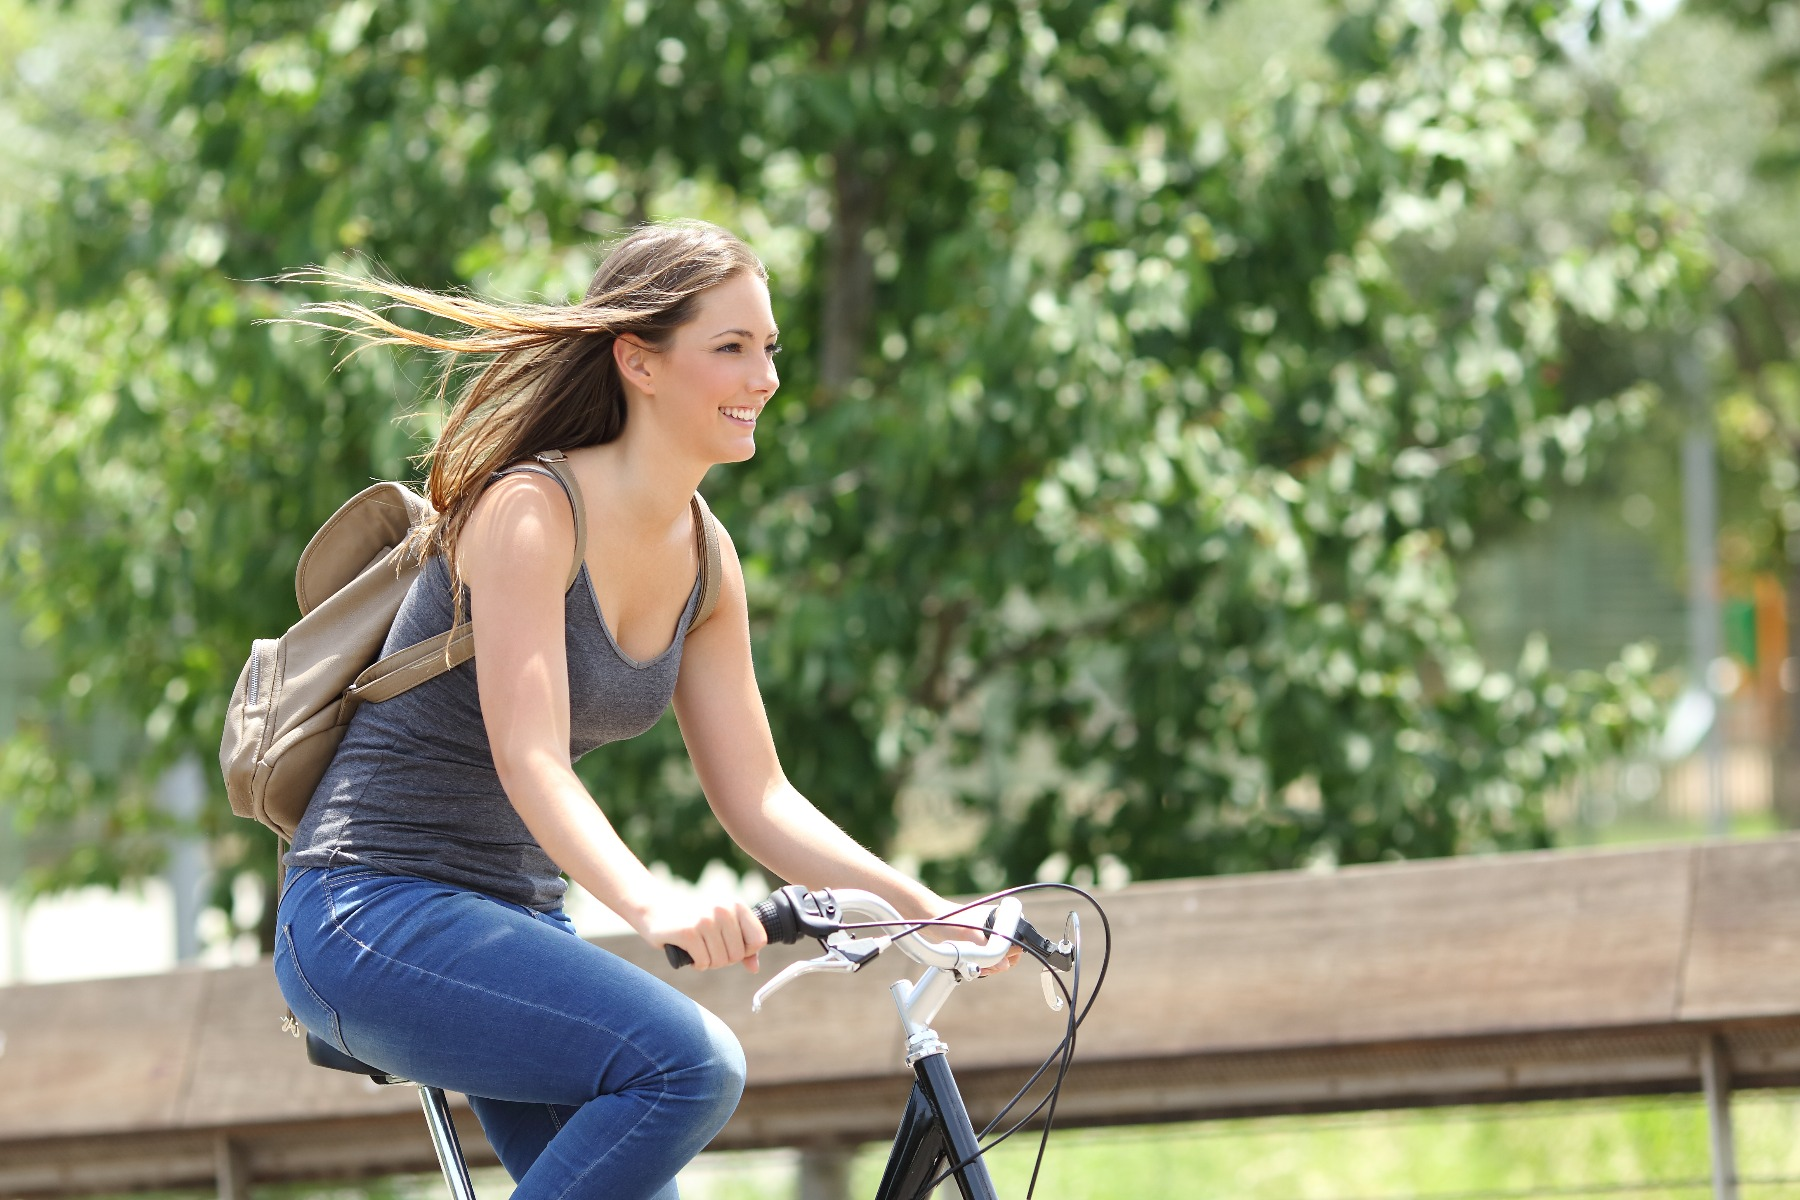 Woman cycling in park